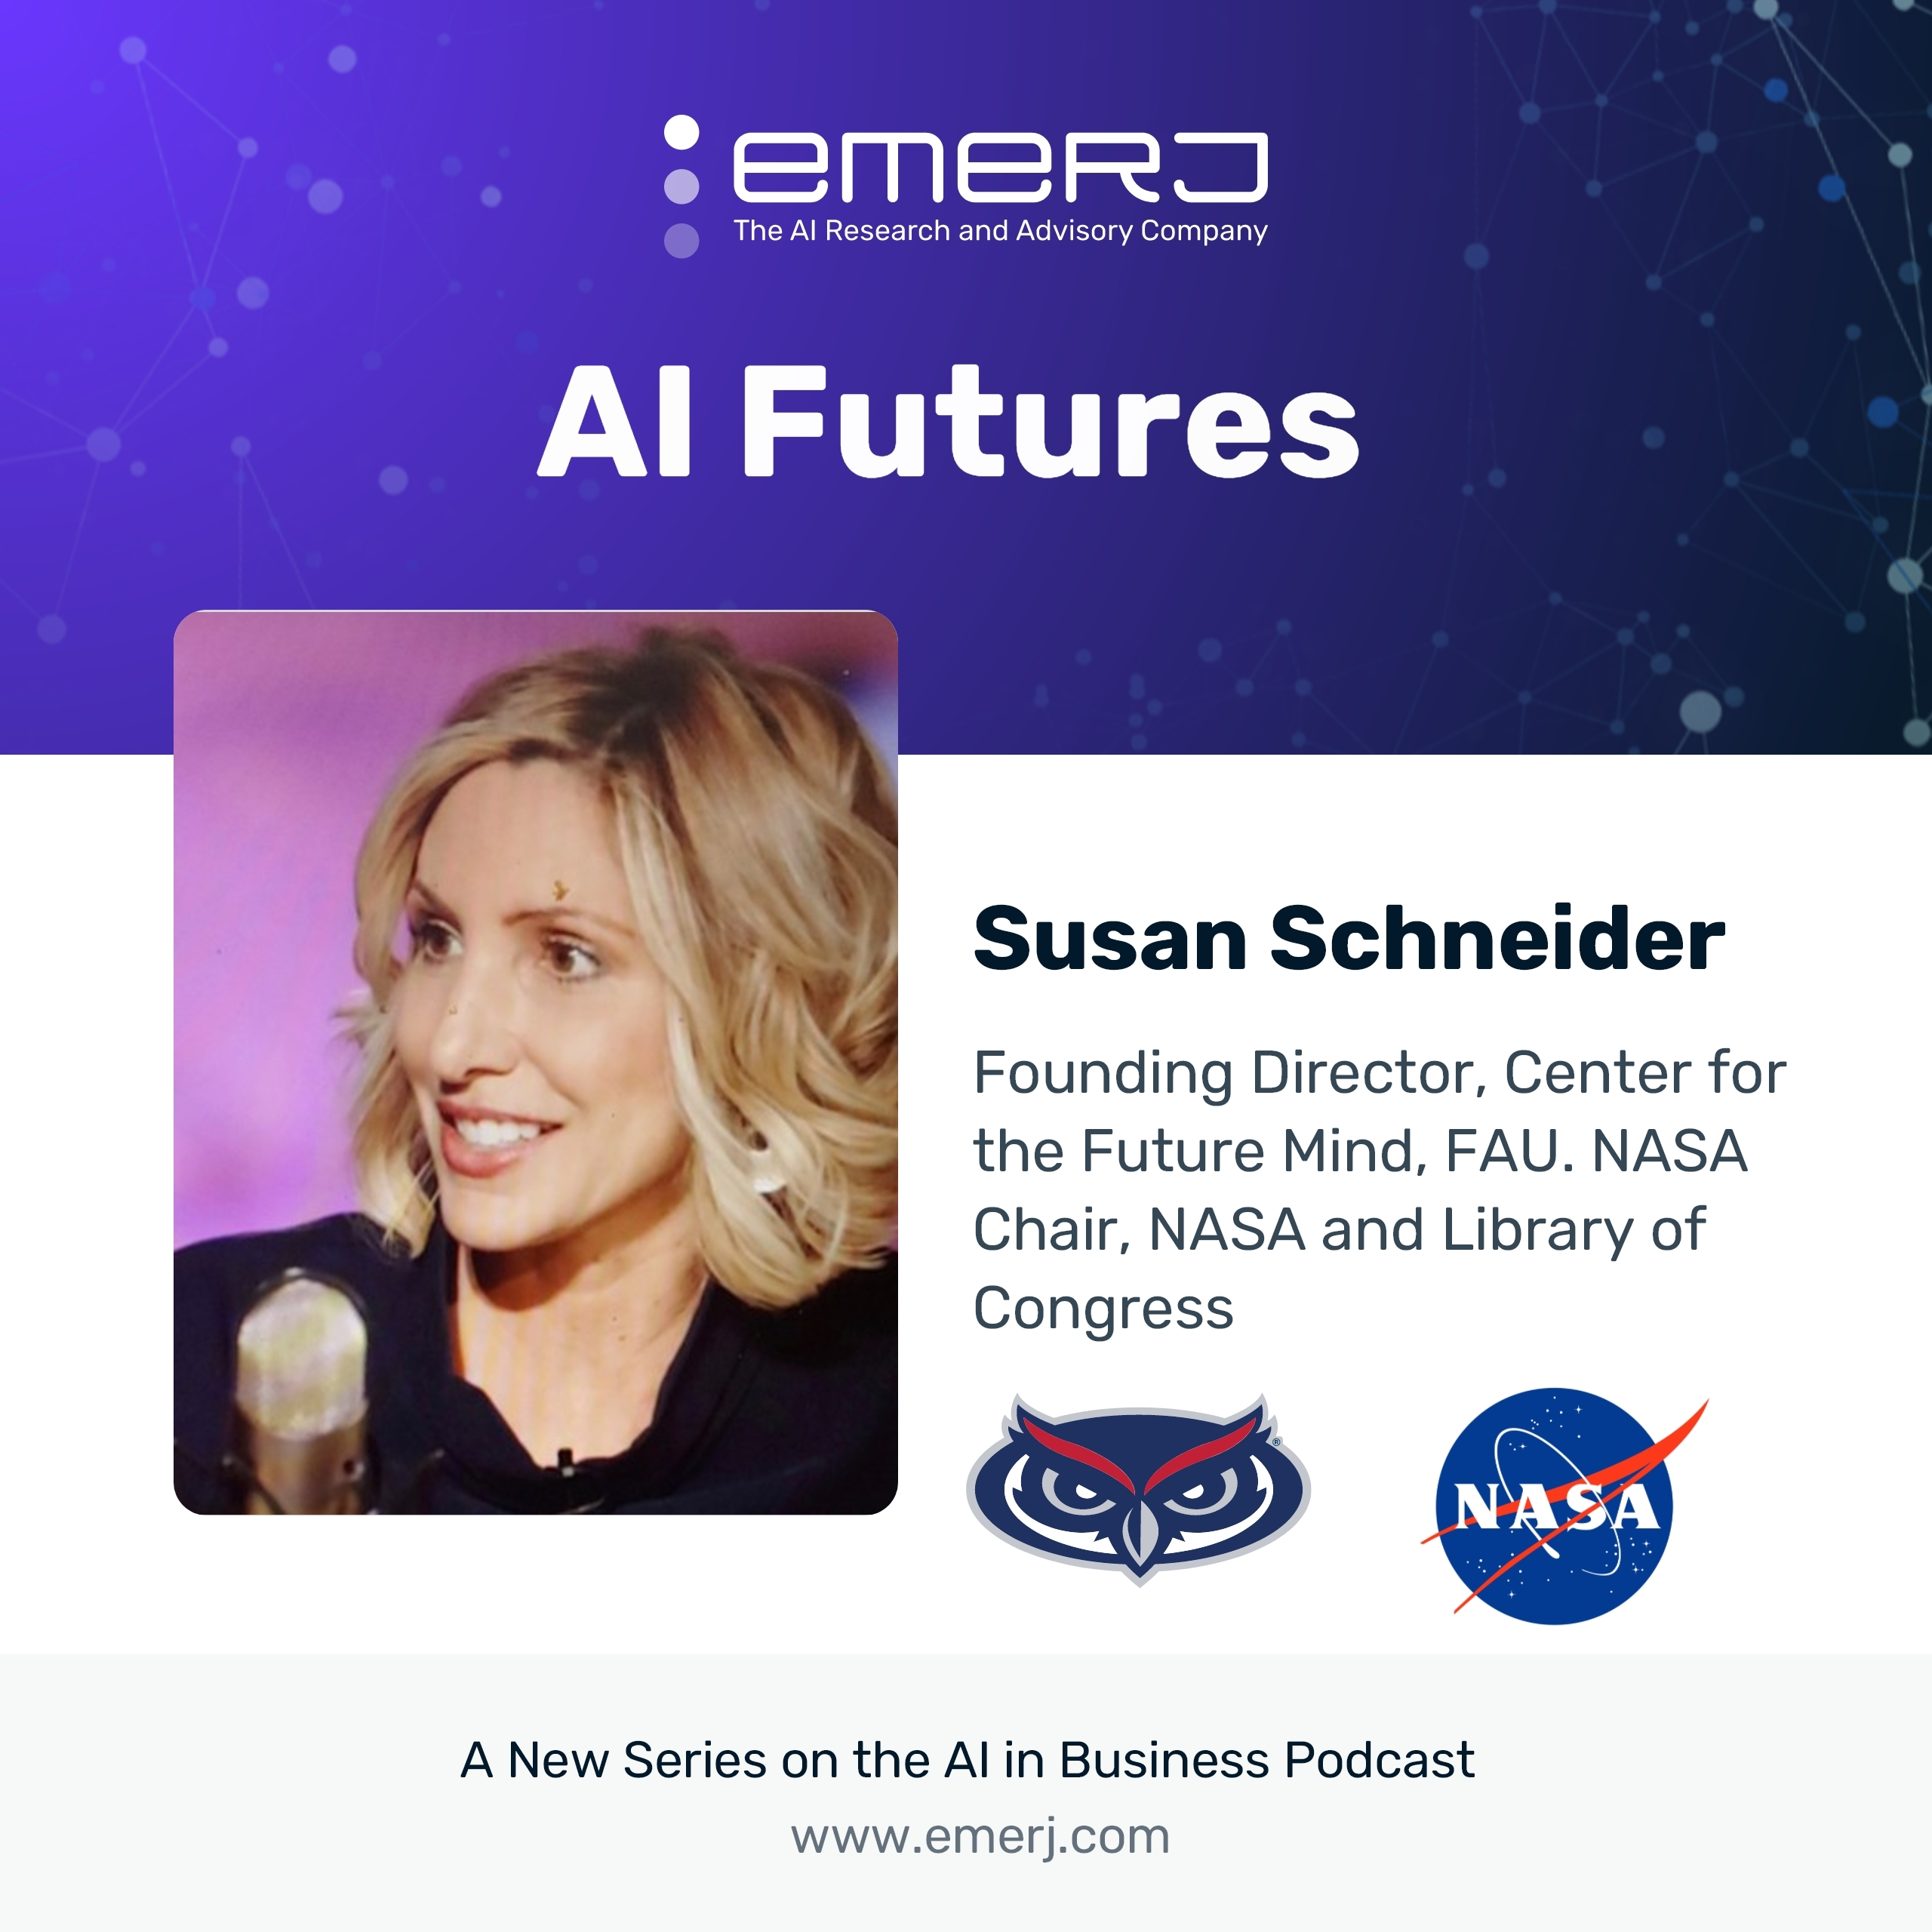 [AI Futures - S2E8] The Dangers and Opportunities of AI and Brain-Computer Interface - with Dr. Susan Schneider of Florida Atlantic University